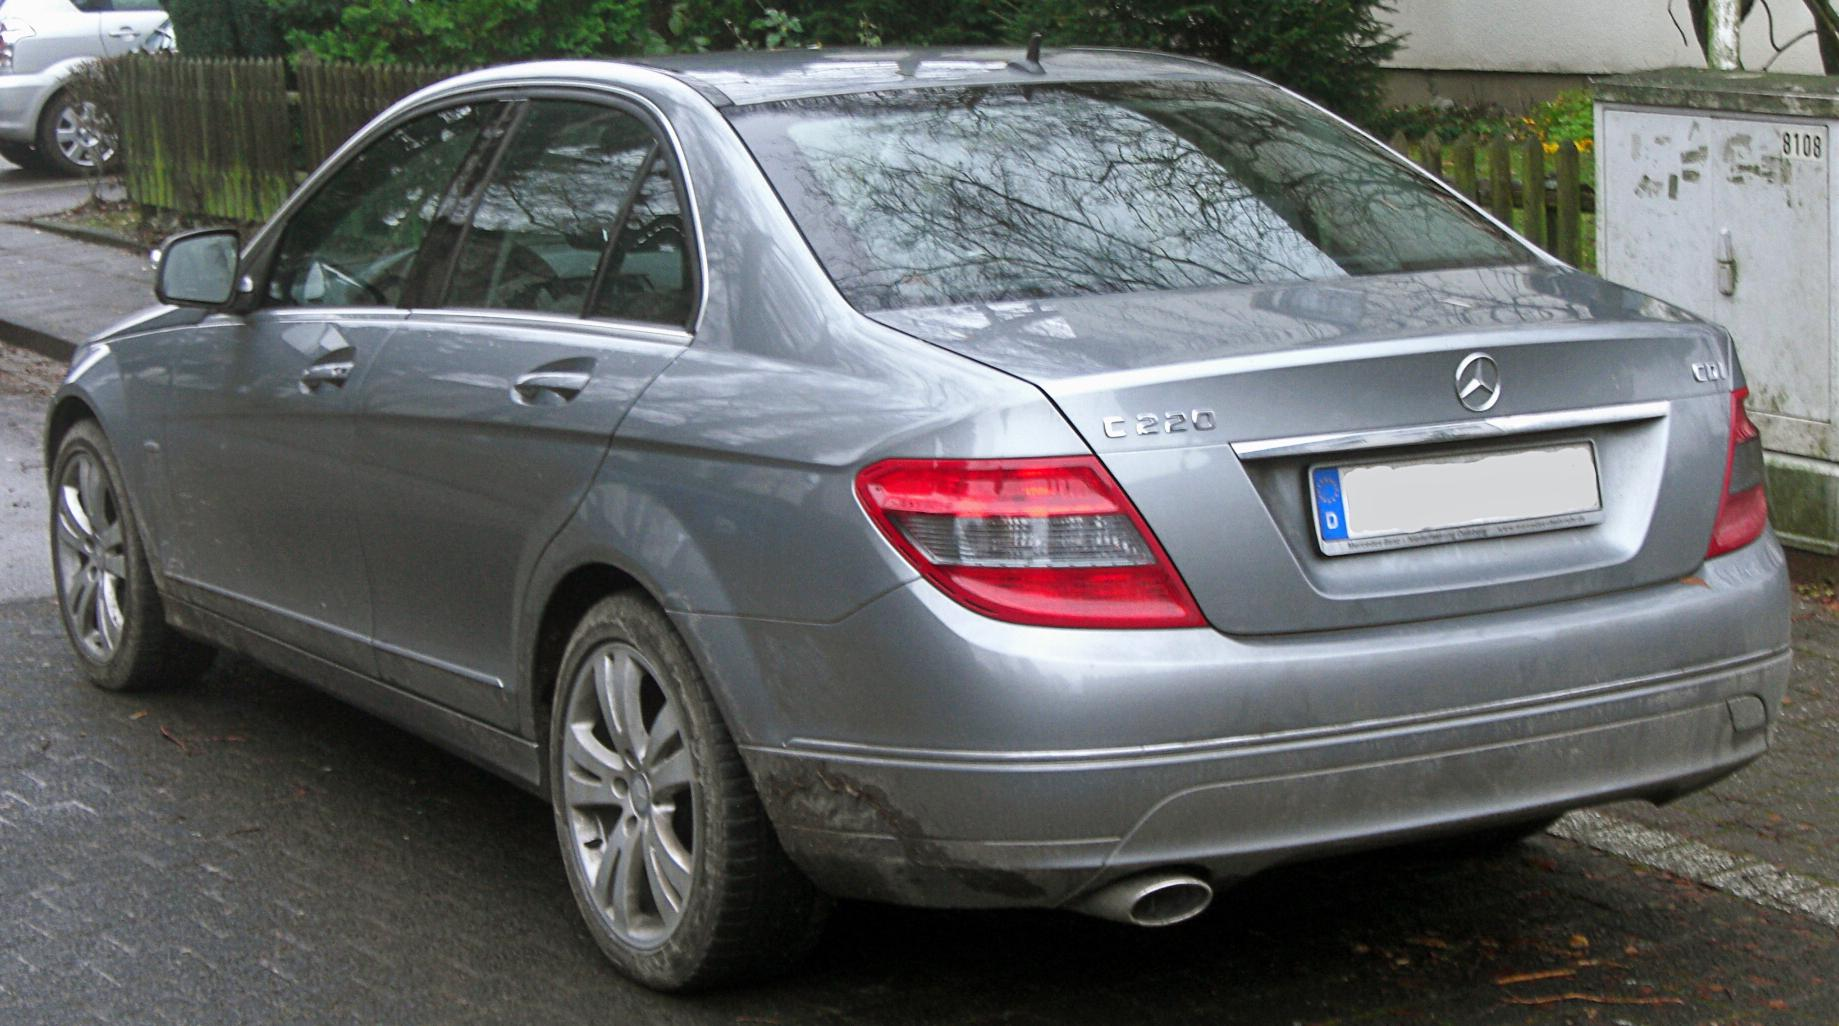 file mercedes c 220 cdi avantgarde w204 seit 2007 rear. Black Bedroom Furniture Sets. Home Design Ideas